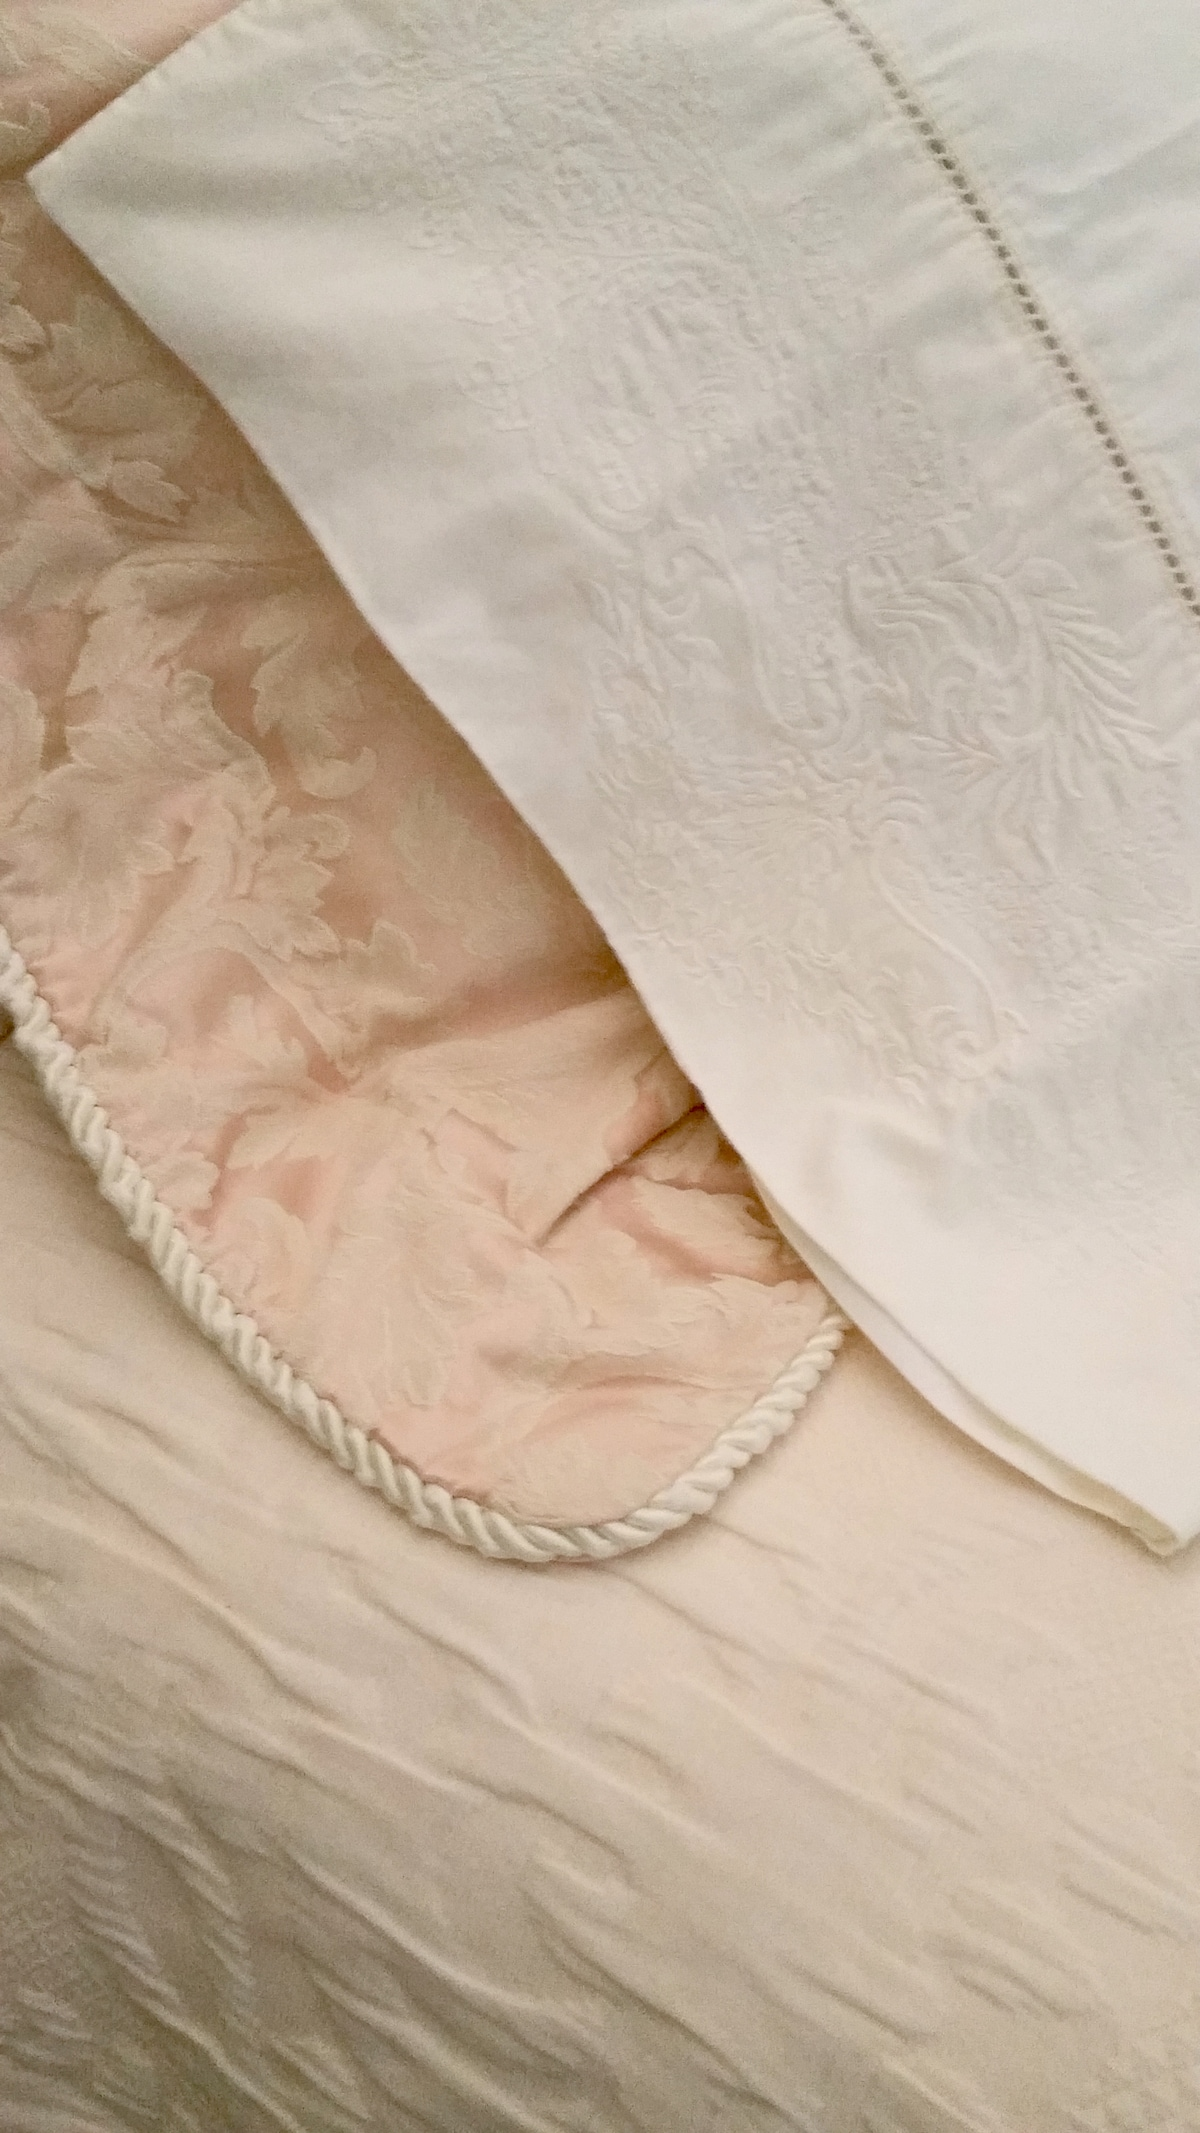 Imported fine linens from France and Italy